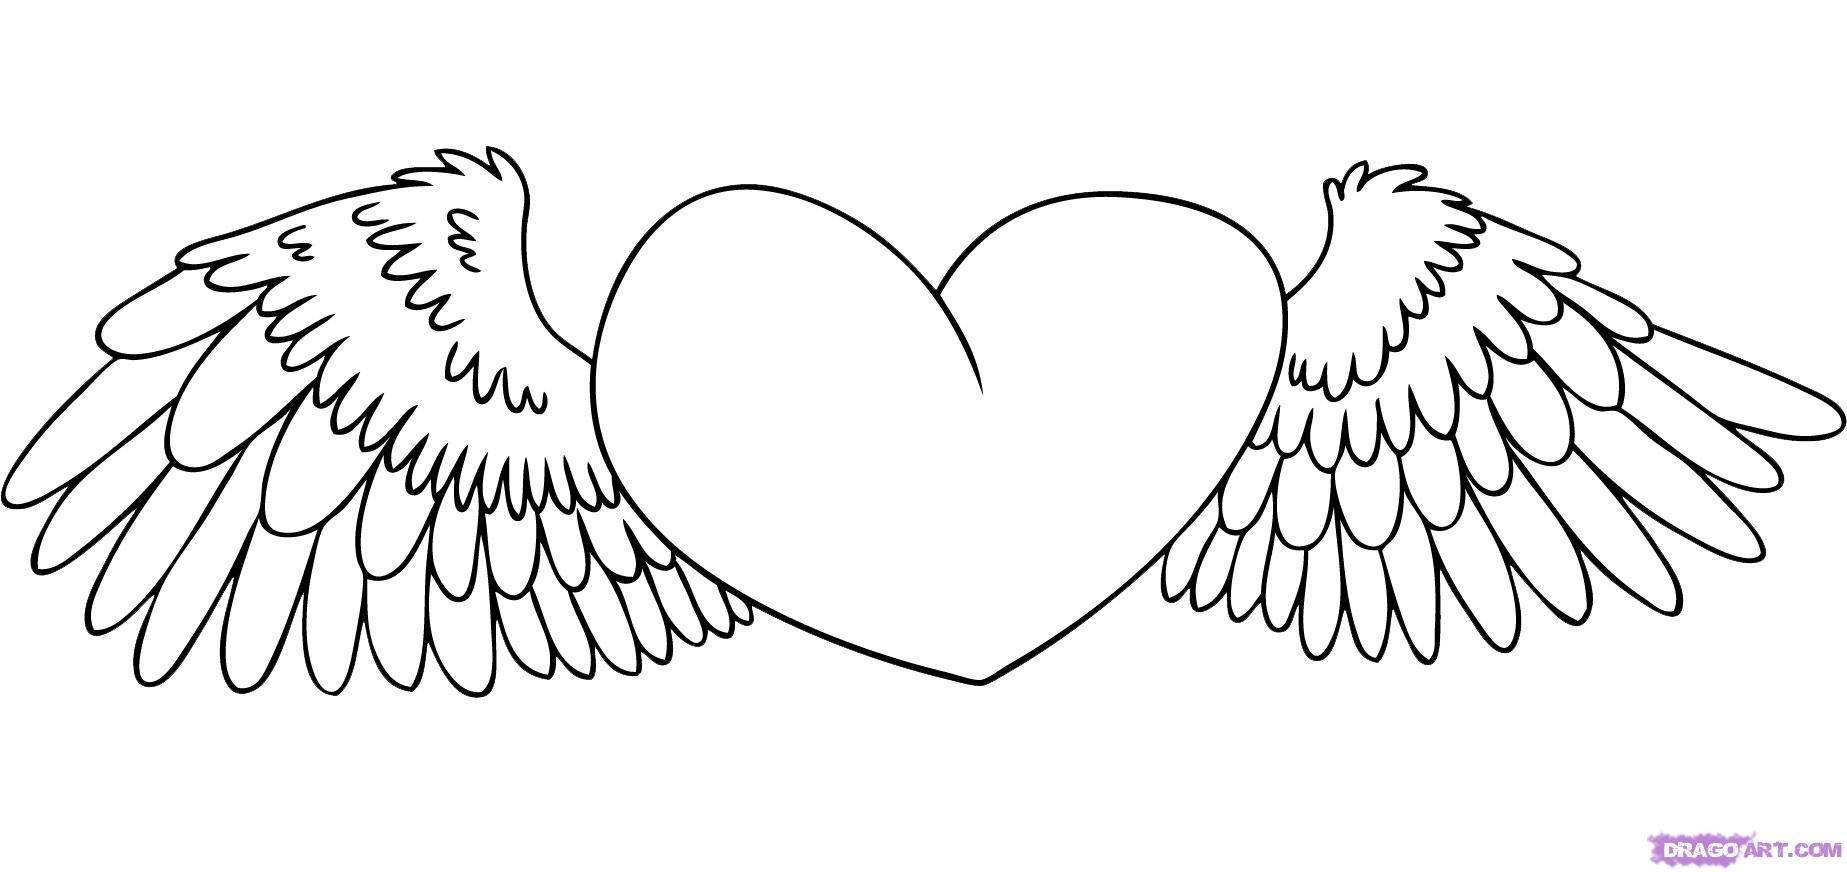 Easy Drawings Of Hearts | Kids Drawing Coloring Page - Cliparts.co ...